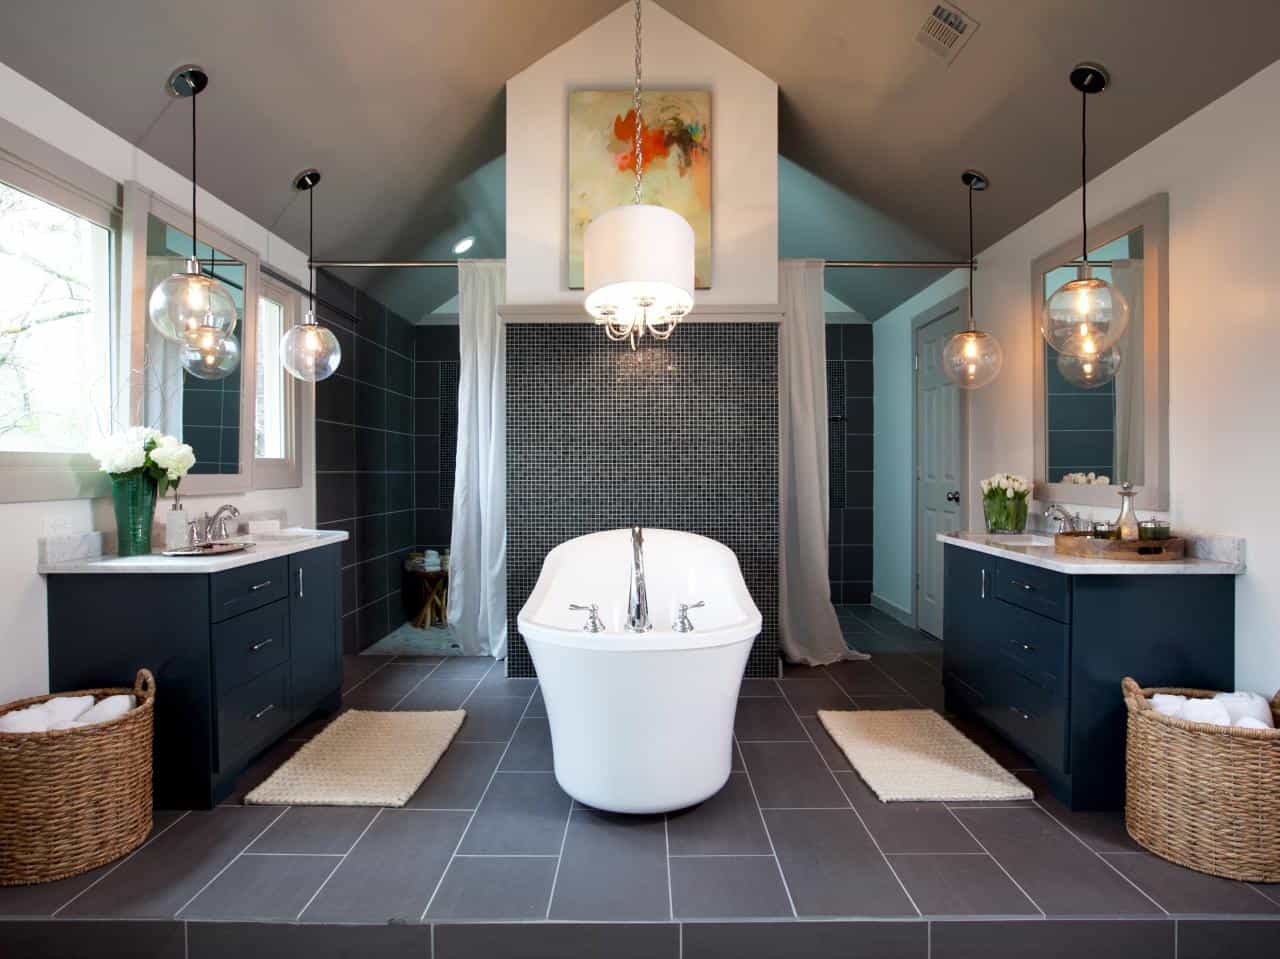 symmetrical lighting Design Essentials For A Dreamy Bathroom